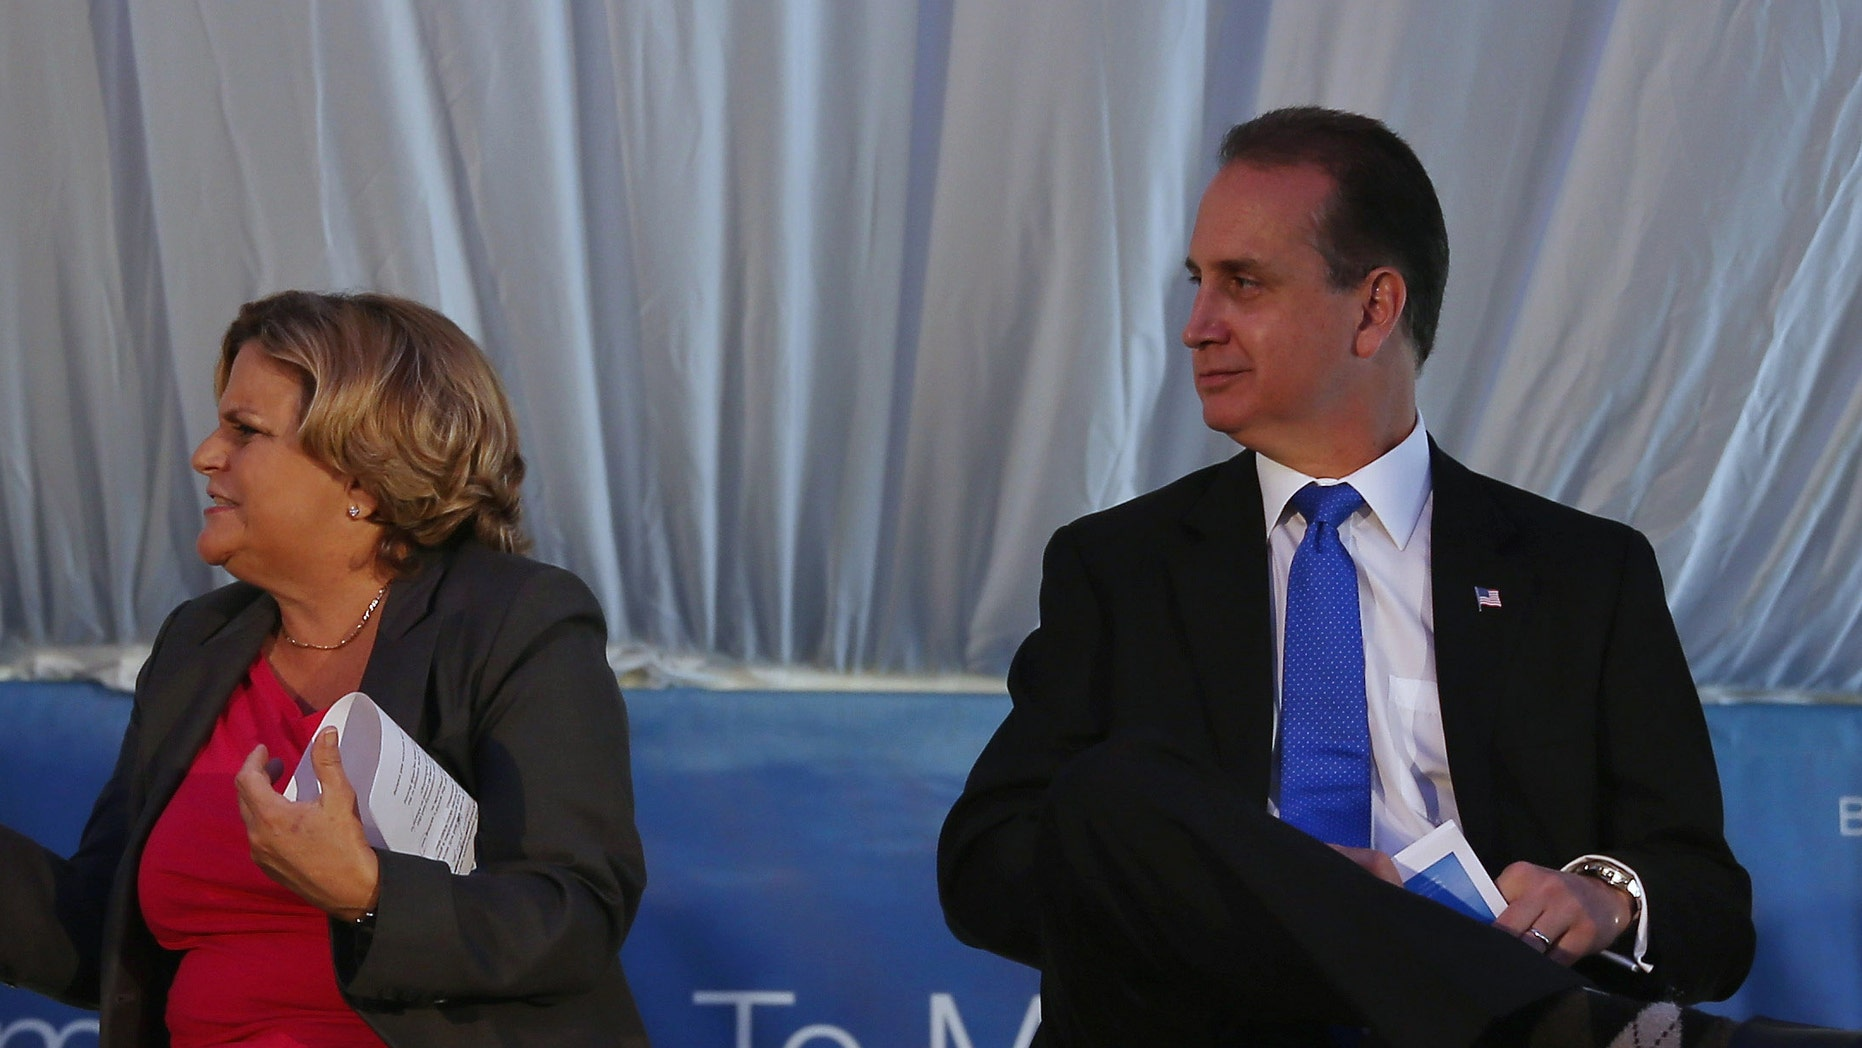 MIAMI, FL - AUGUST 29:  (L-R) Florida Gov. Rick Scott (L) sits with Rep. Ileana Ros-Lehtinen (R-FL), Rep. Mario Diaz-Balart (R-FL) and Rep. Joe Garcia (D-FL) at the grand opening of the main North American training campus for Boeing that includes full-flight simulators for the 787 Dreamliner on August 29, 2013 in Miami, Florida.  Boeing officials say the Miami campus will be one of the largest airline training centers in the world.  (Photo by Joe Raedle/Getty Images)